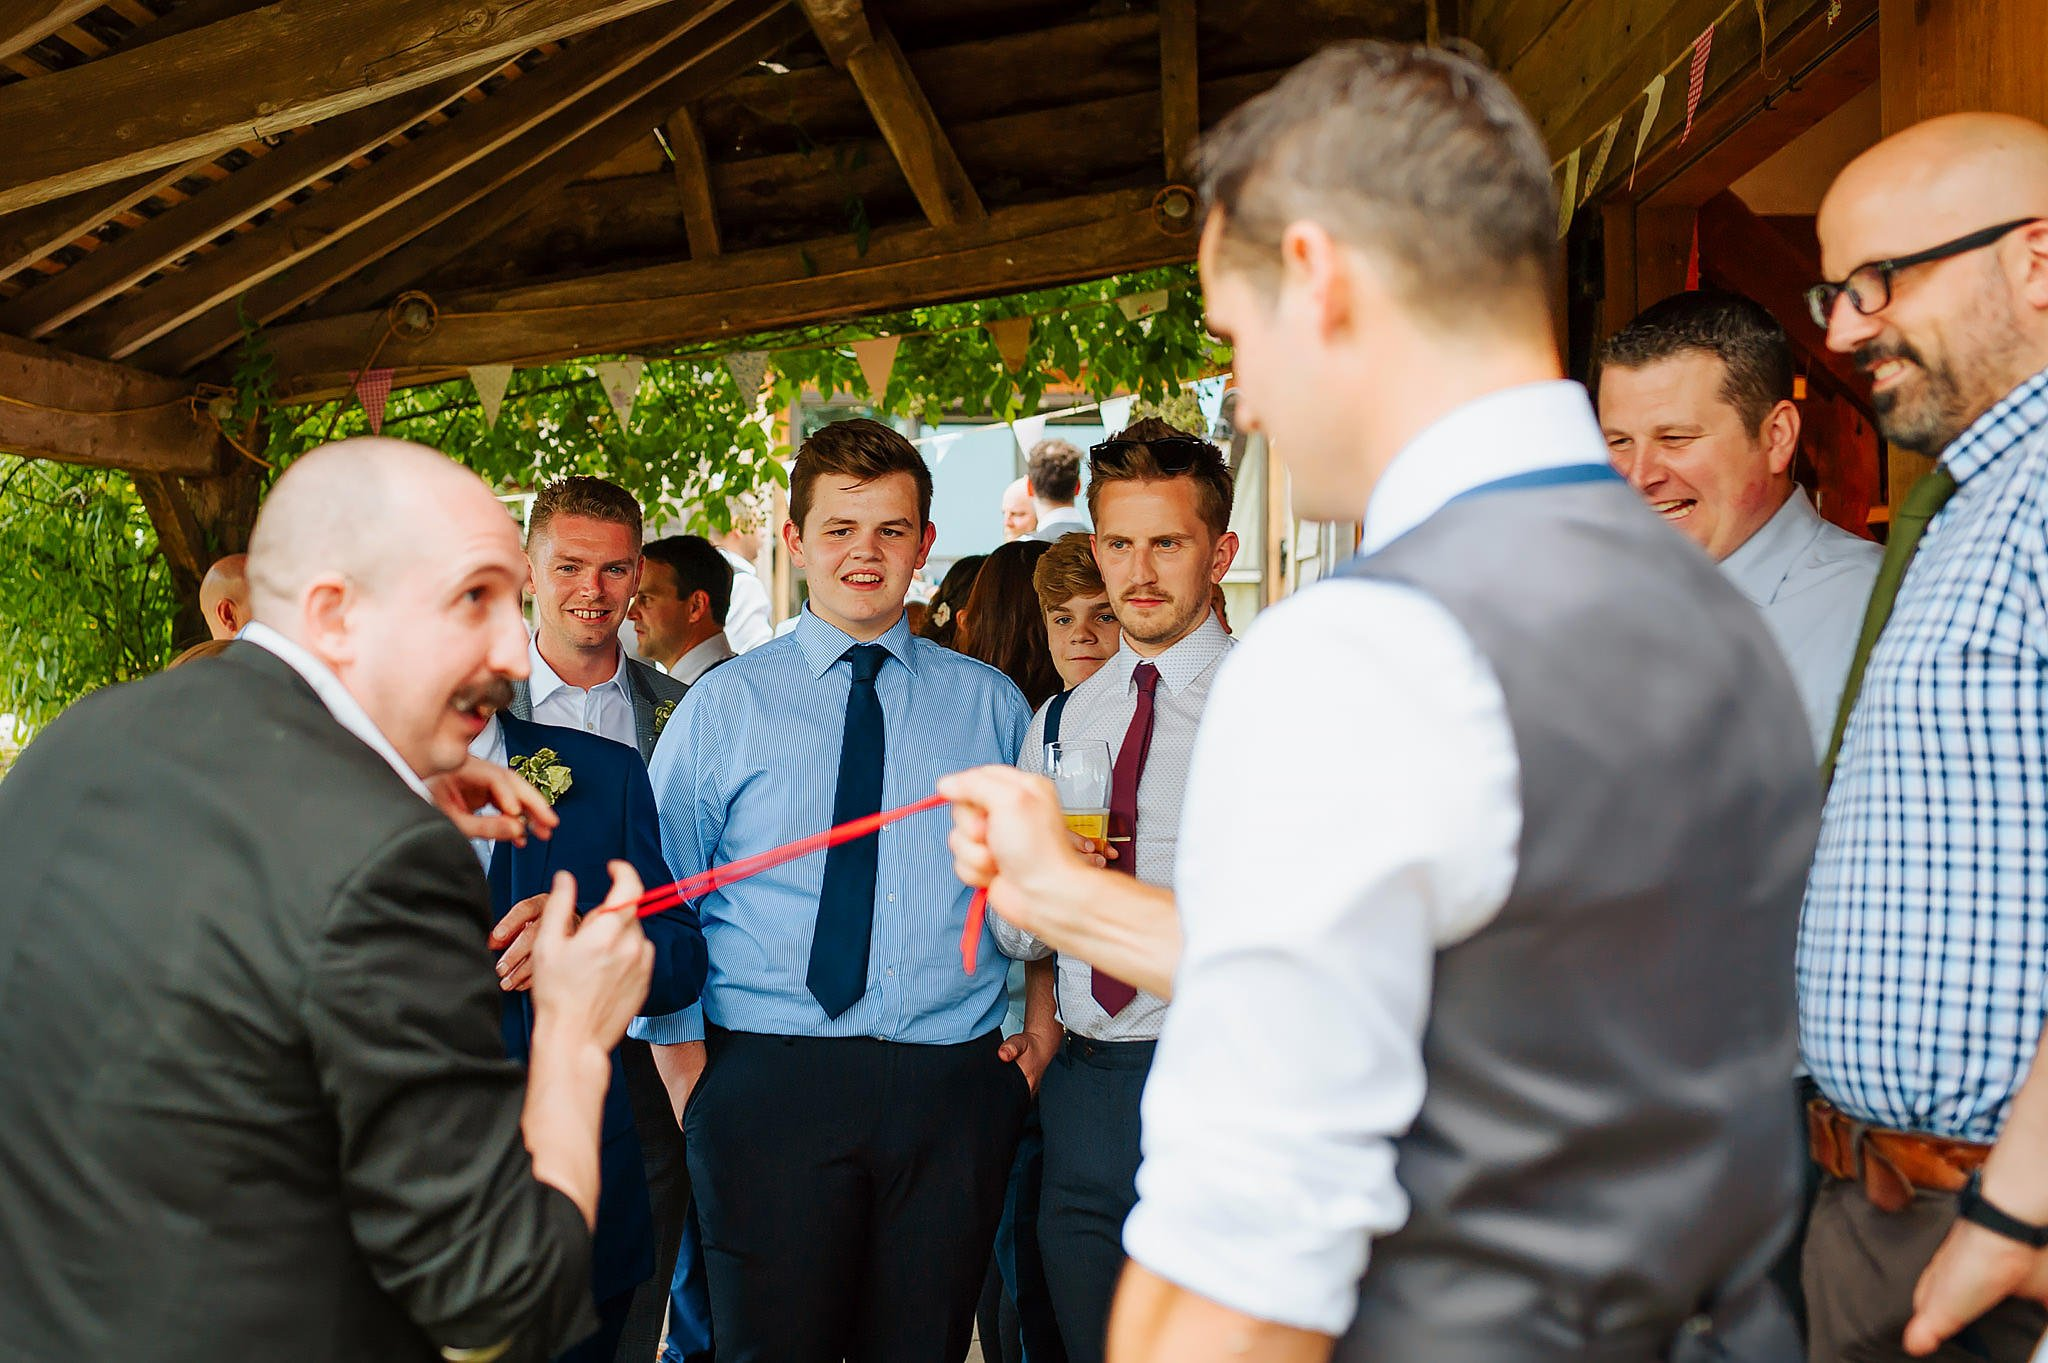 Wedding photography at Hellens Manor in Herefordshire, West Midlands | Shelley + Ian 116